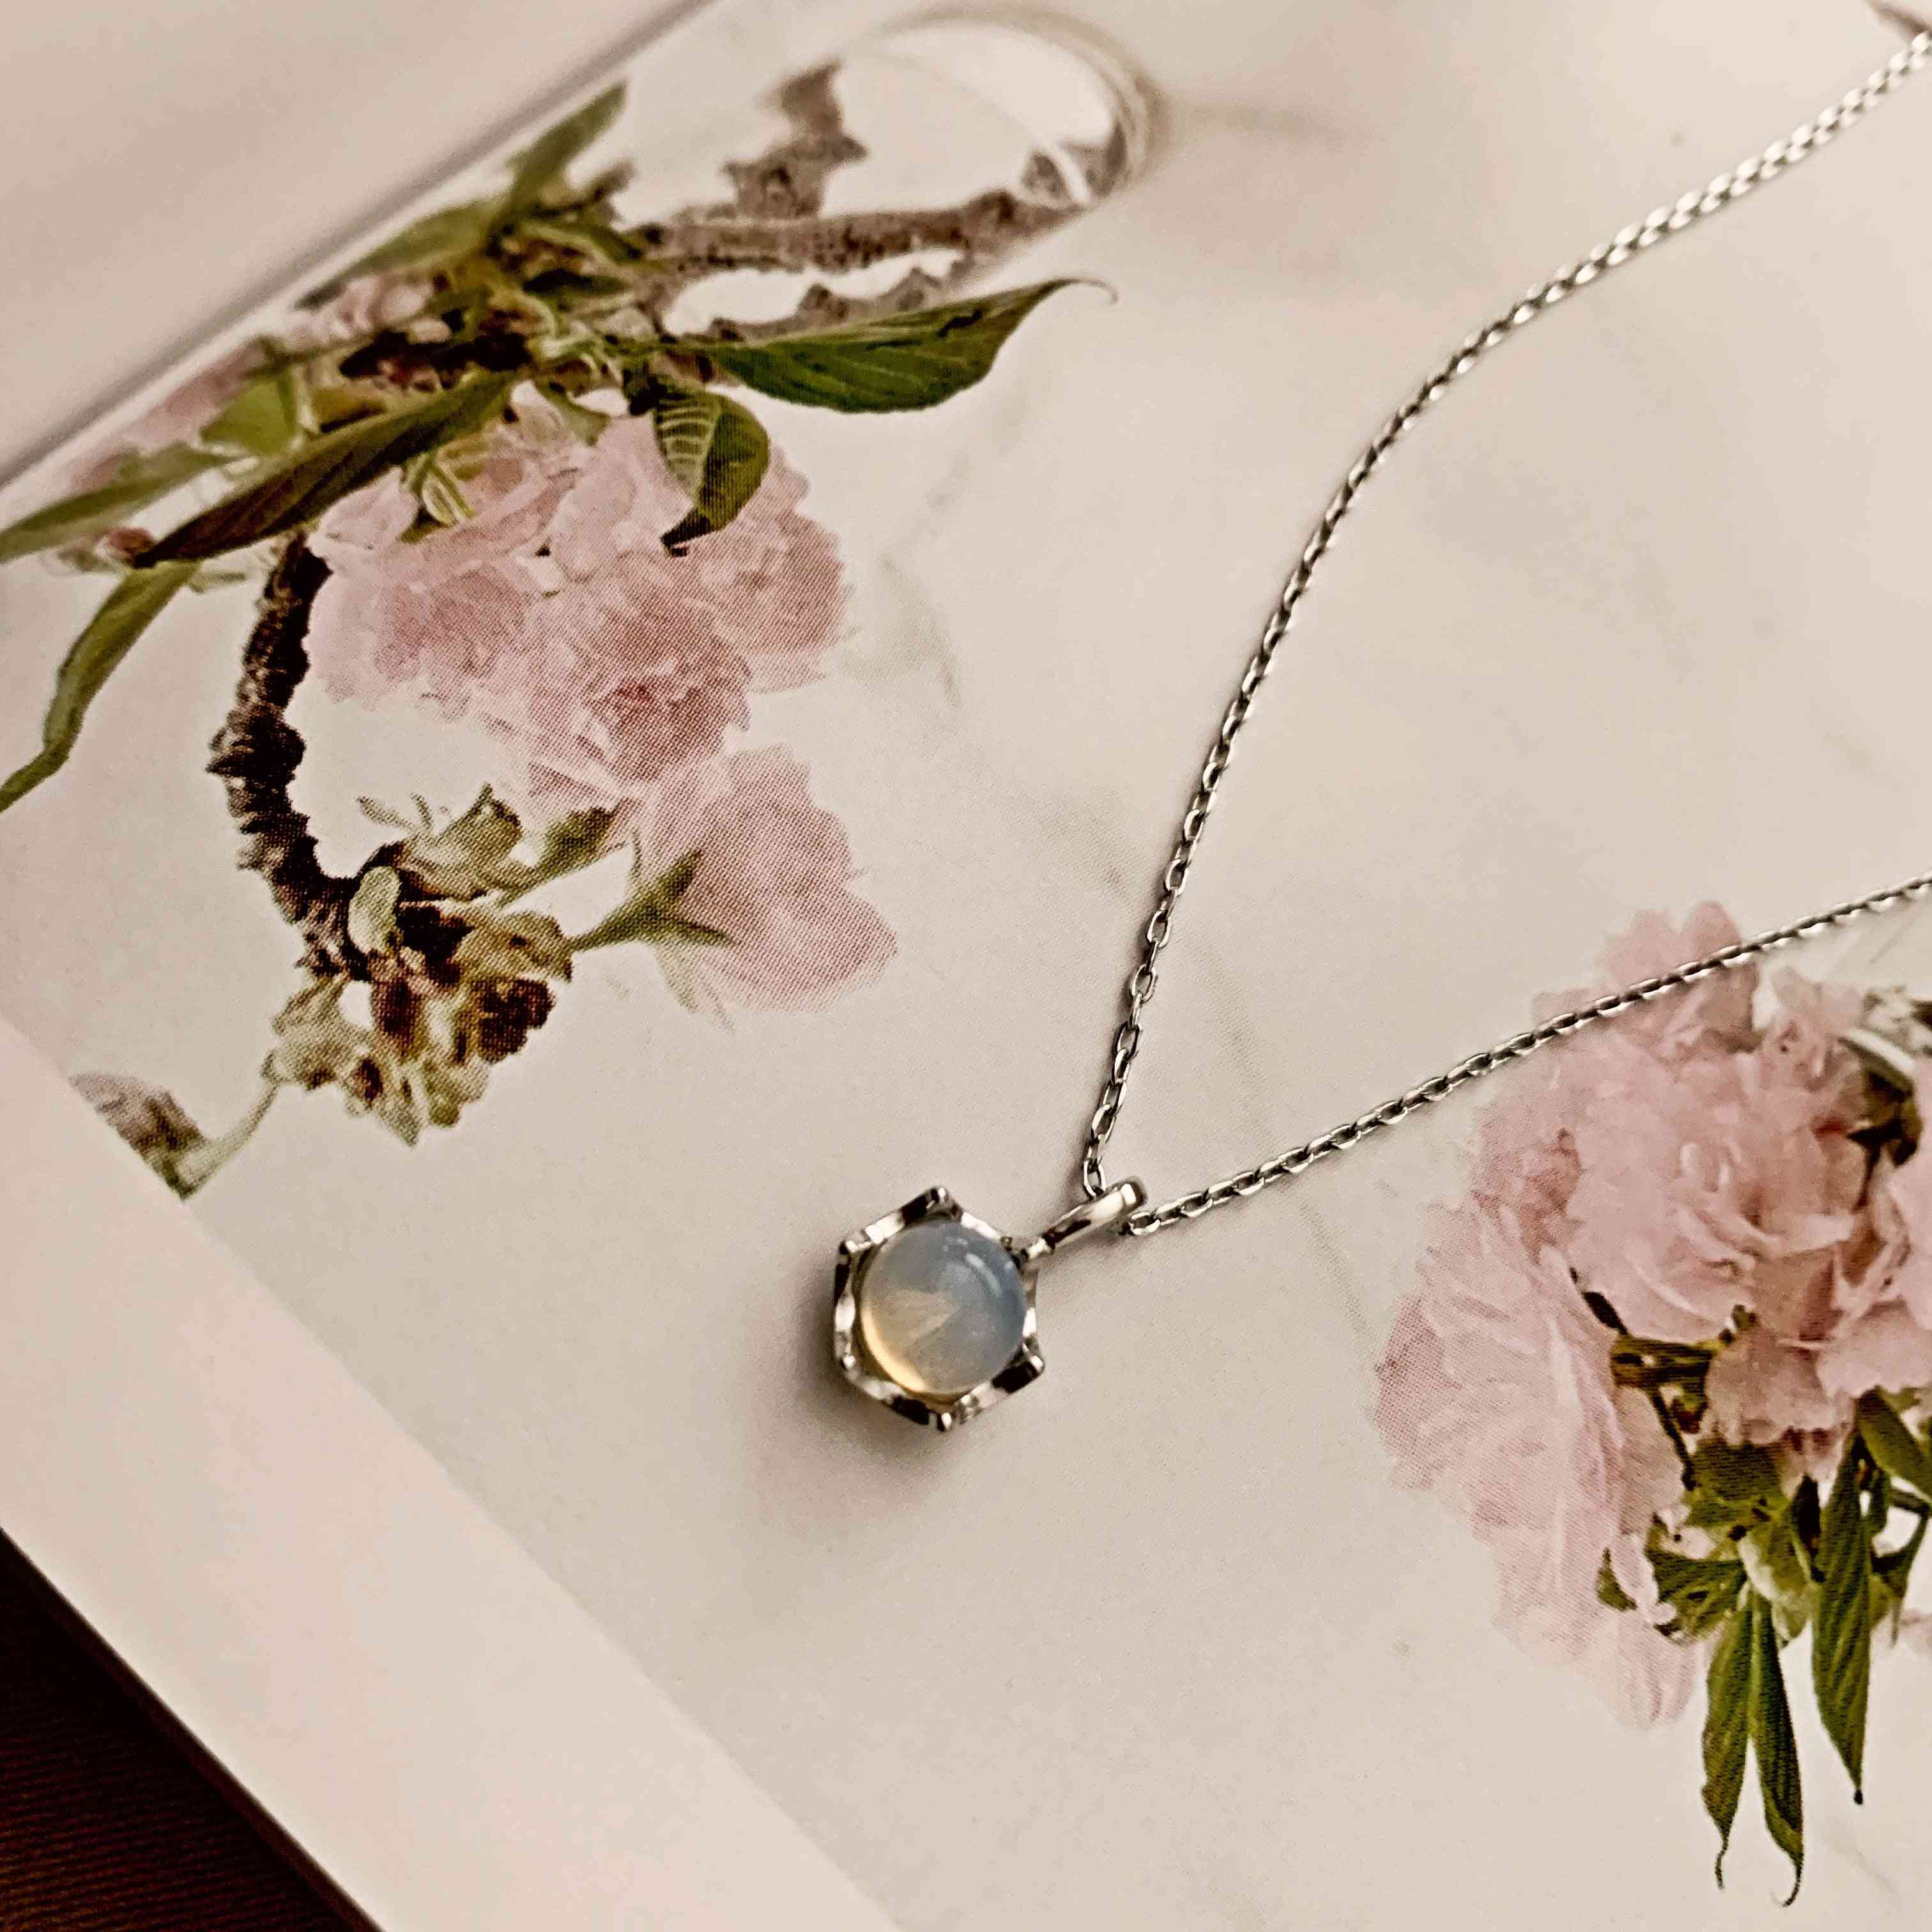 The Sea Pearl Necklace